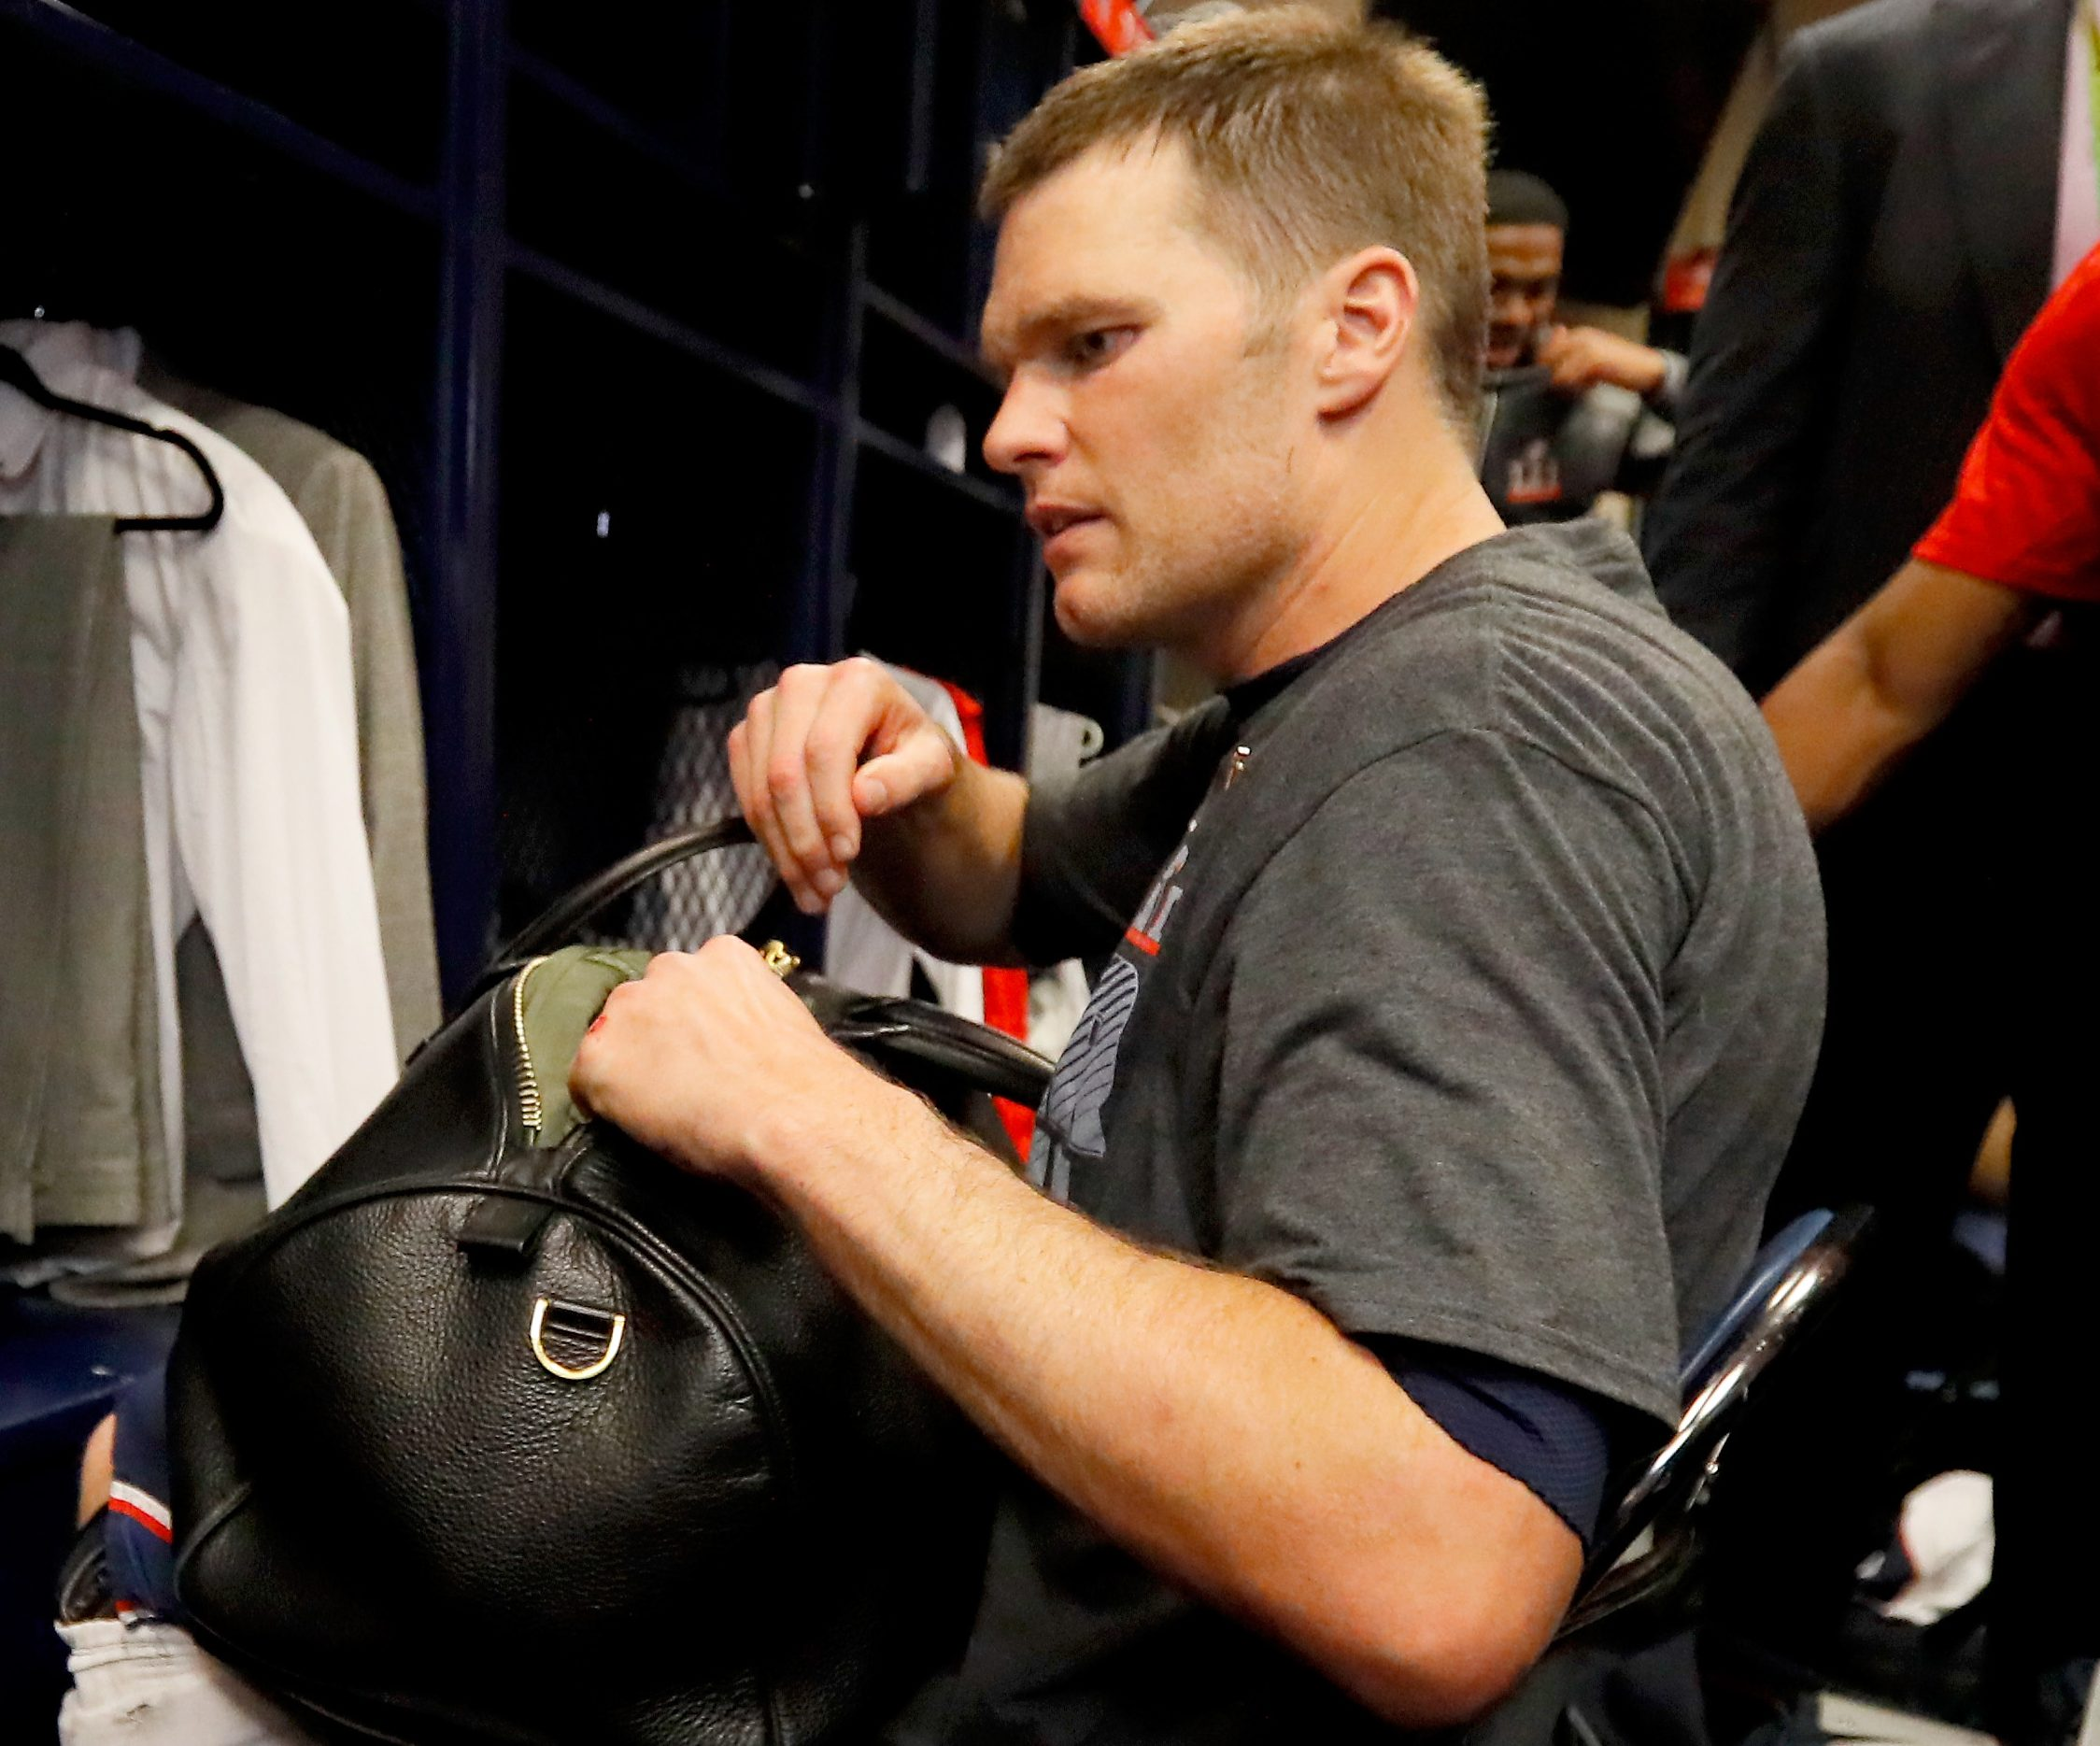 Mexican media company apologizes for theft of Tom Brady jersey ...